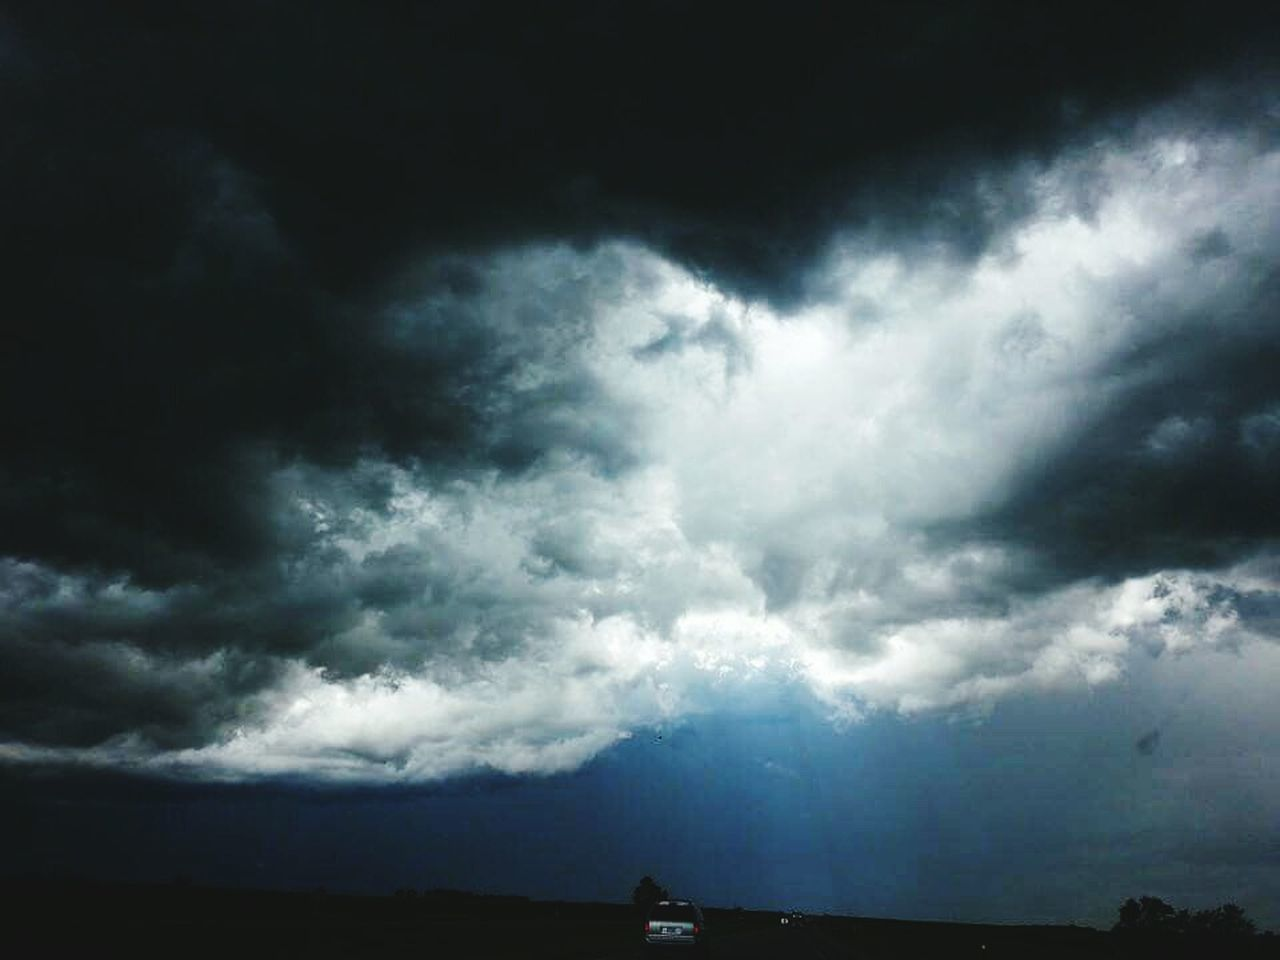 cloud - sky, dramatic sky, sky, cloudscape, thunderstorm, weather, storm cloud, storm, silhouette, nature, outdoors, scenics, no people, built structure, building exterior, beauty in nature, architecture, day